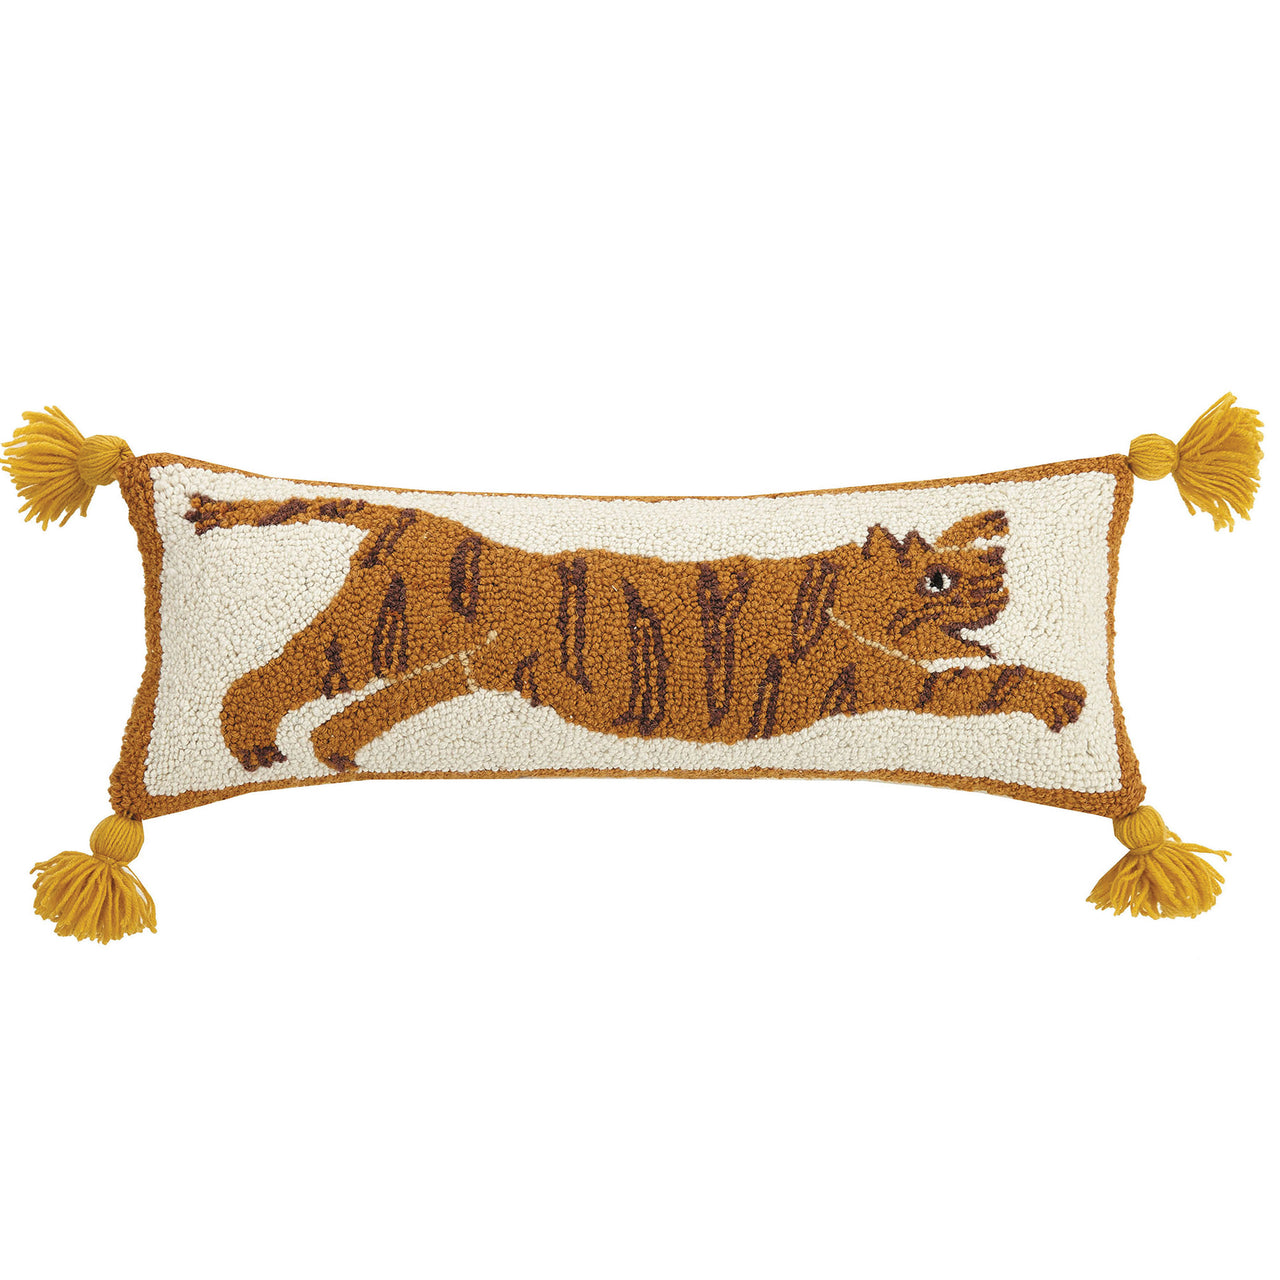 Tiger Pom Pom Throw Pillow